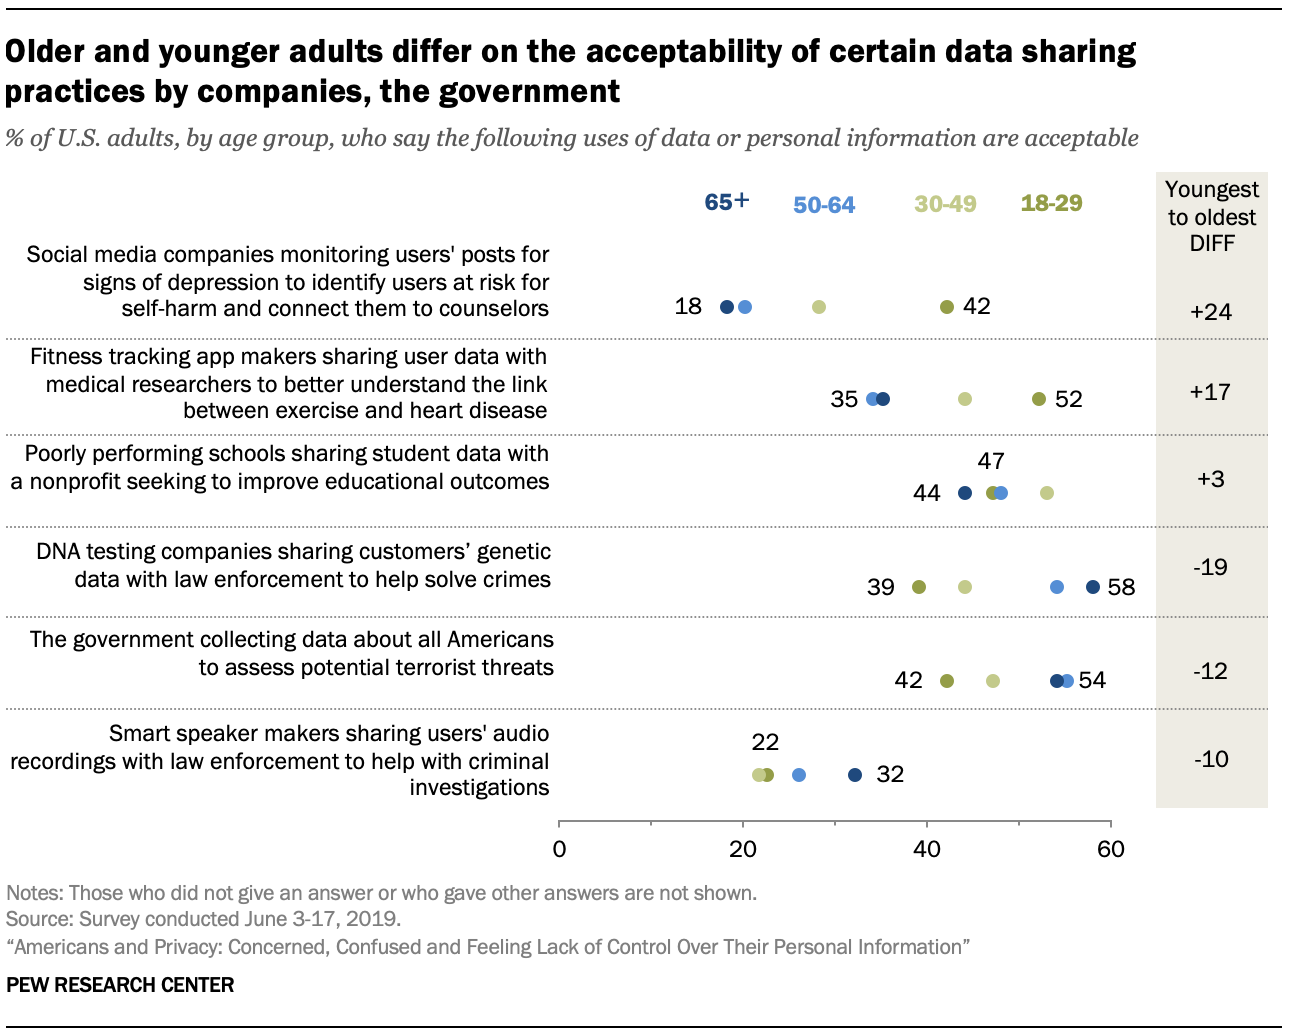 Older and younger adults differ on the acceptability of certain data sharing practices by companies, the government